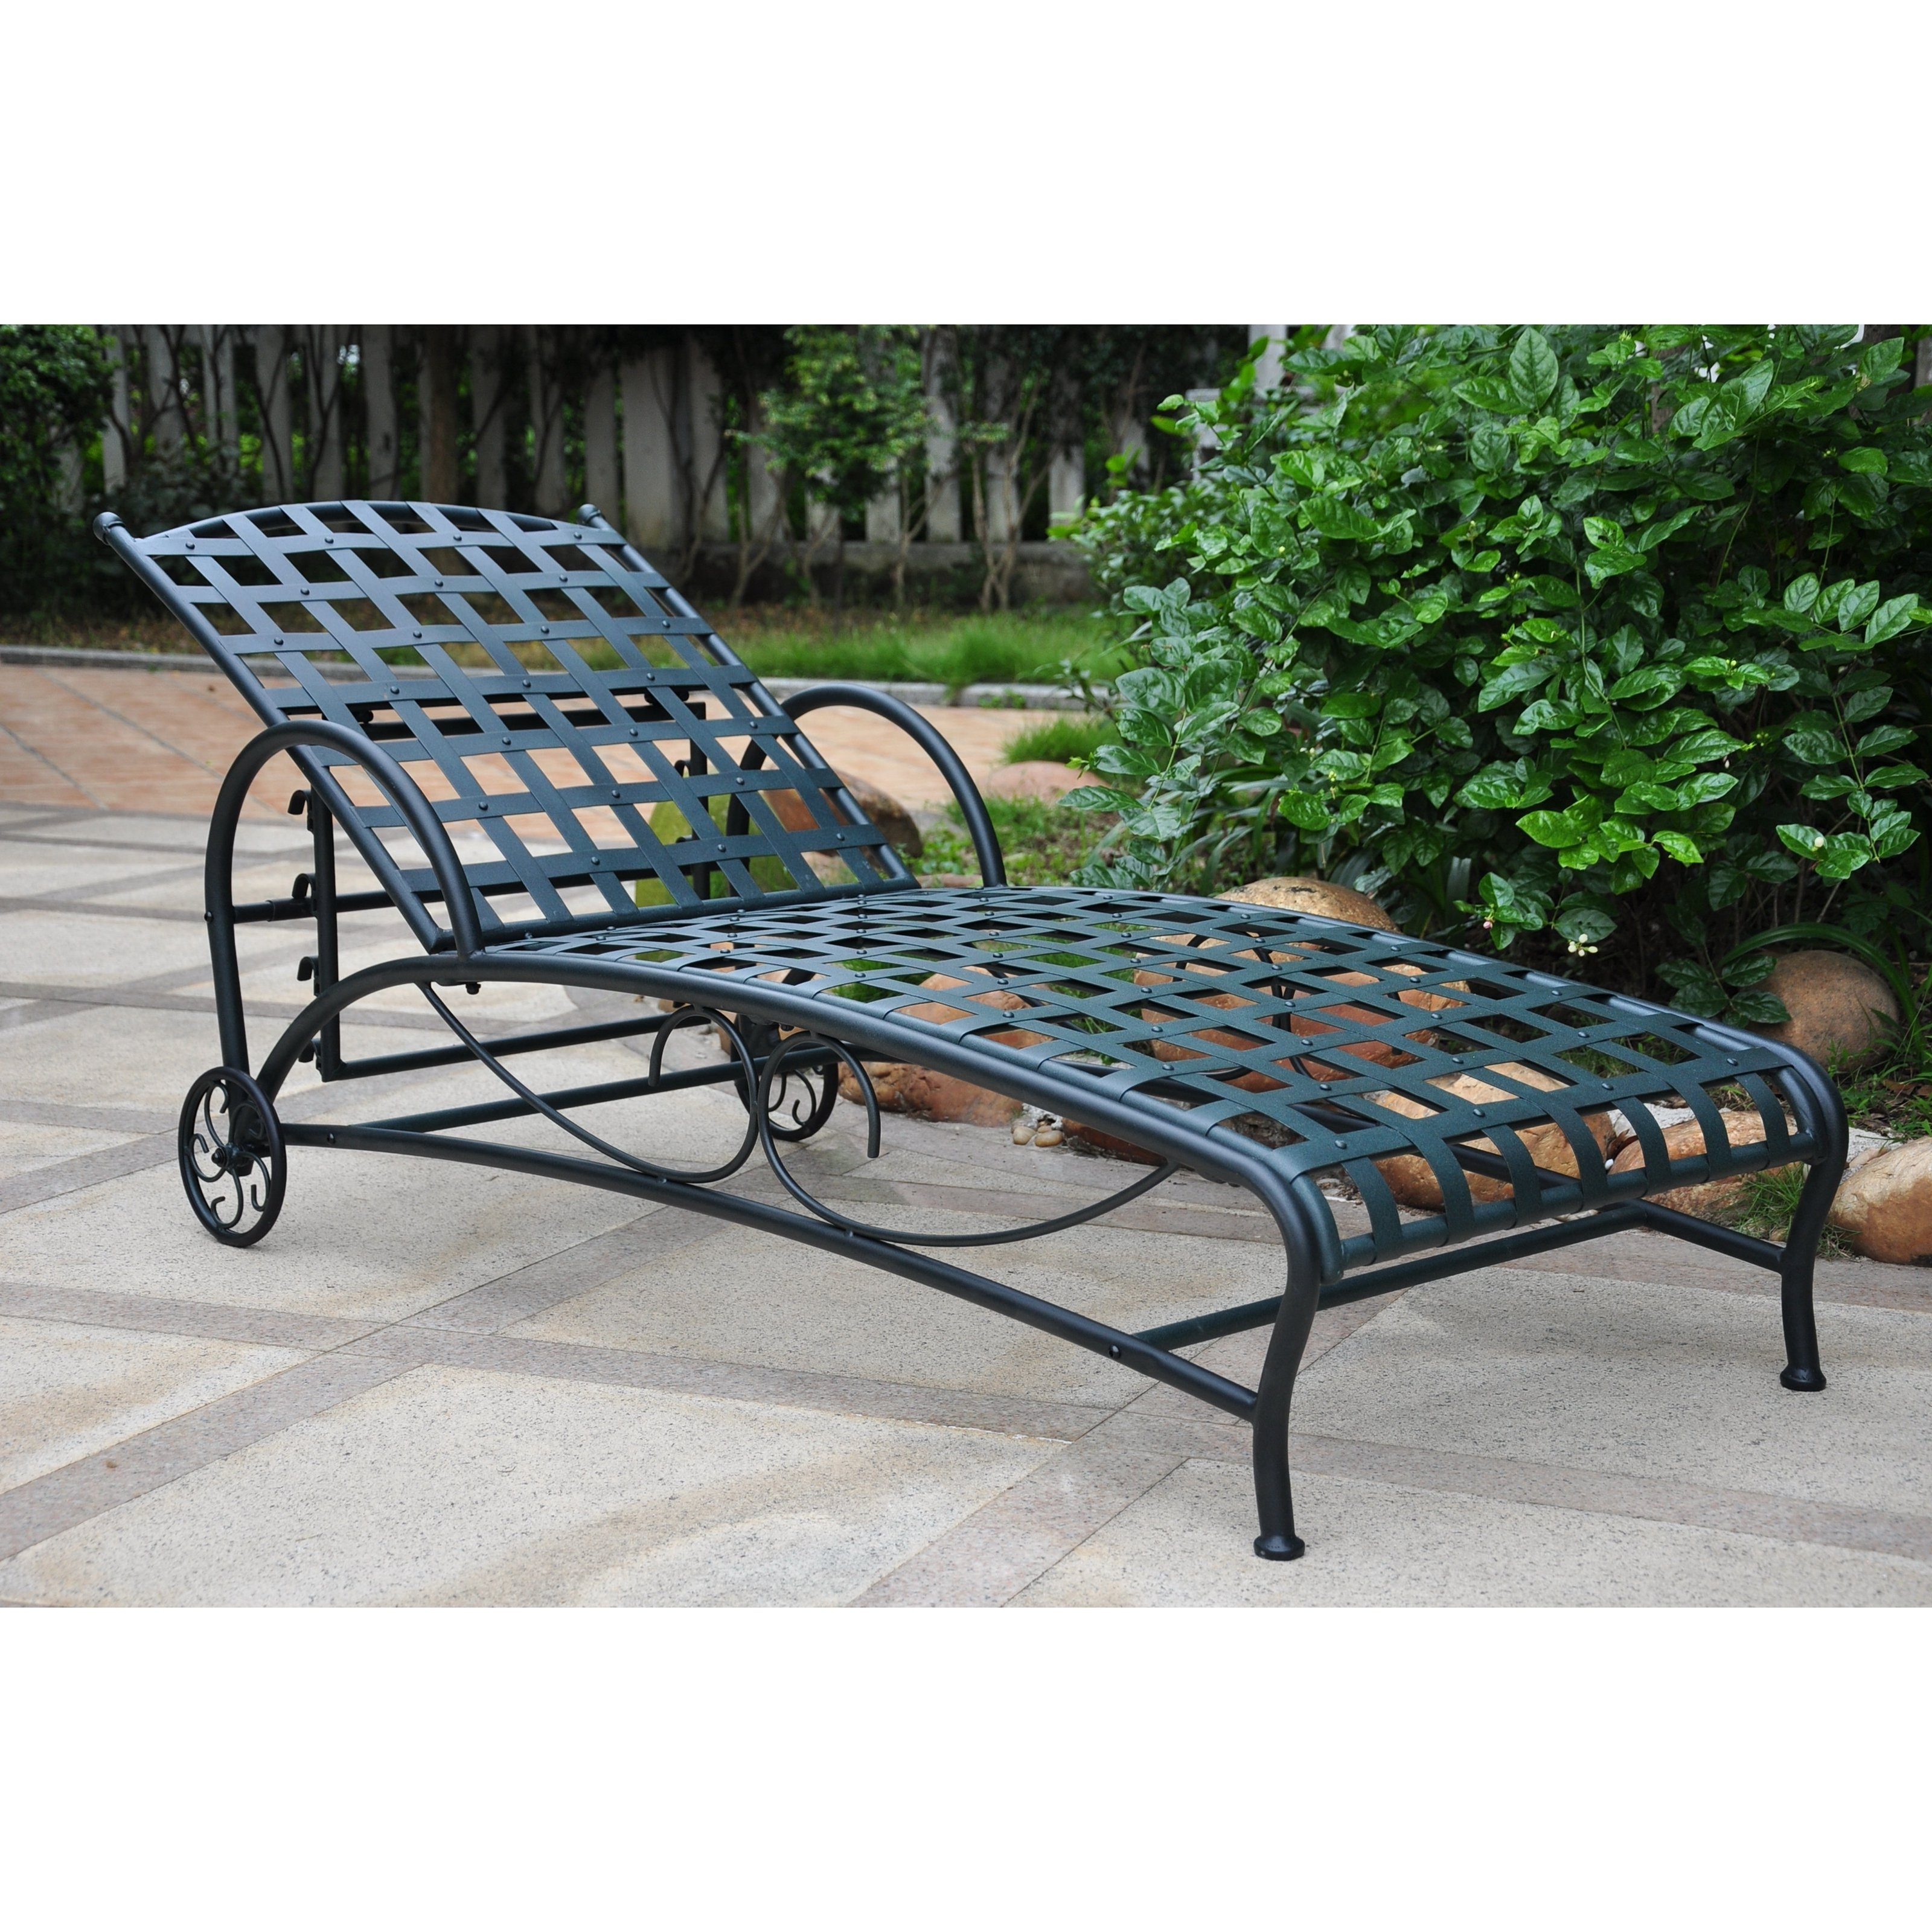 Current Wrought Iron Outdoor Chaise Lounge Chairs Regarding Wrought Iron Chaise Lounge Chairs Outdoor • Lounge Chairs Ideas (View 3 of 15)